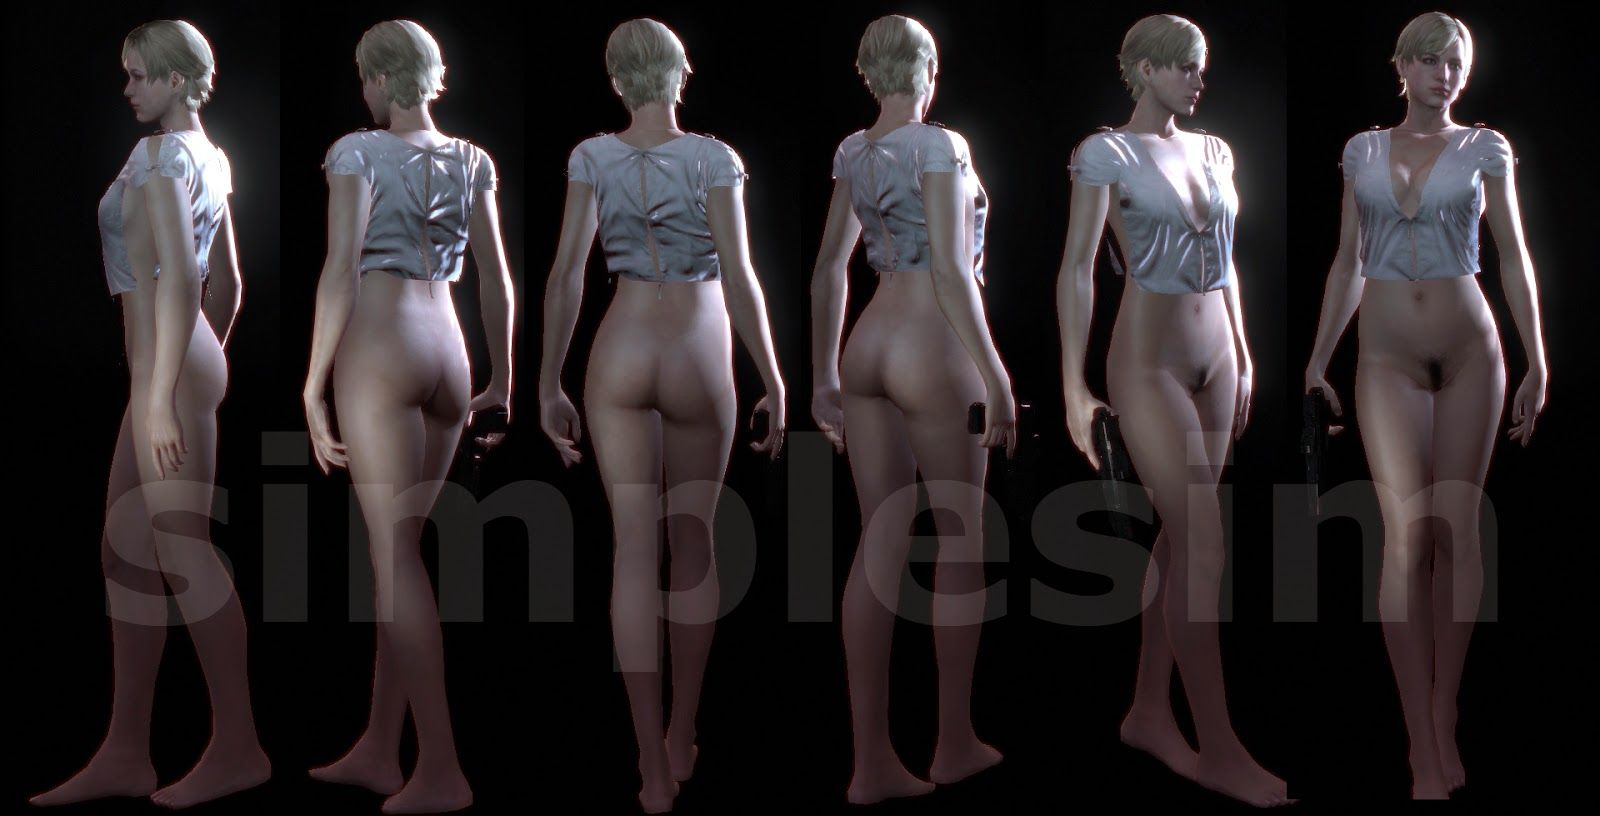 Resident evil 5 nude mode how to  cartoon galleries